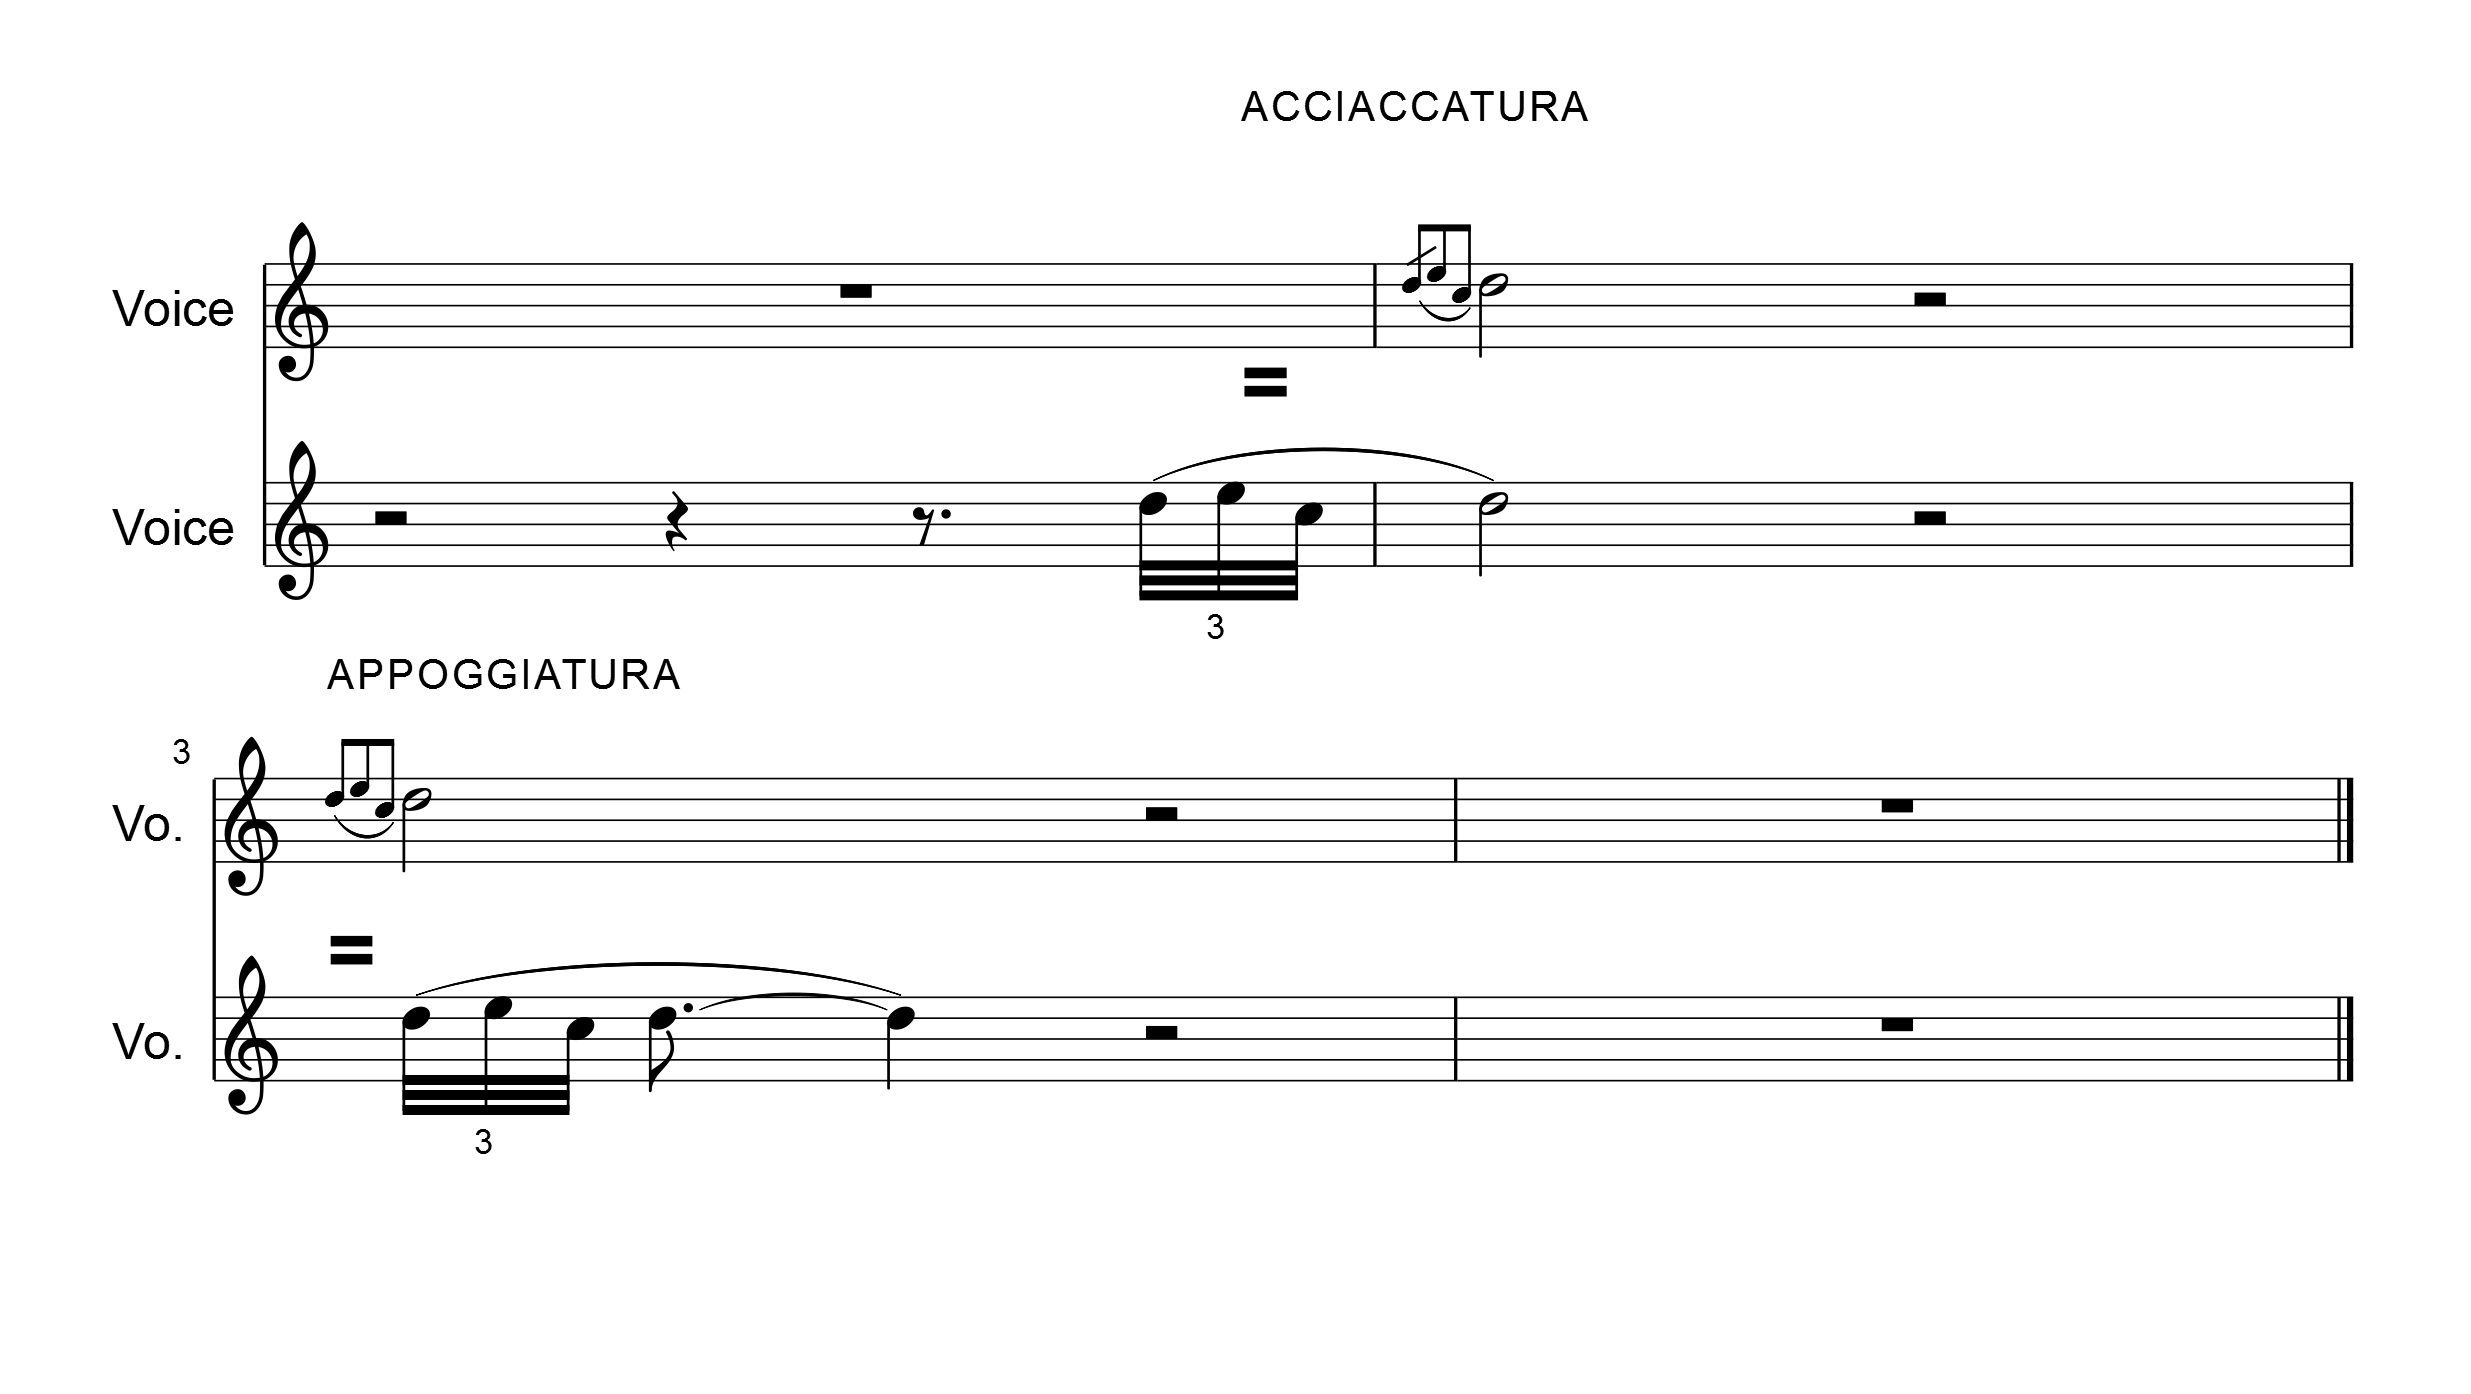 how to add acciaccatura in musescore